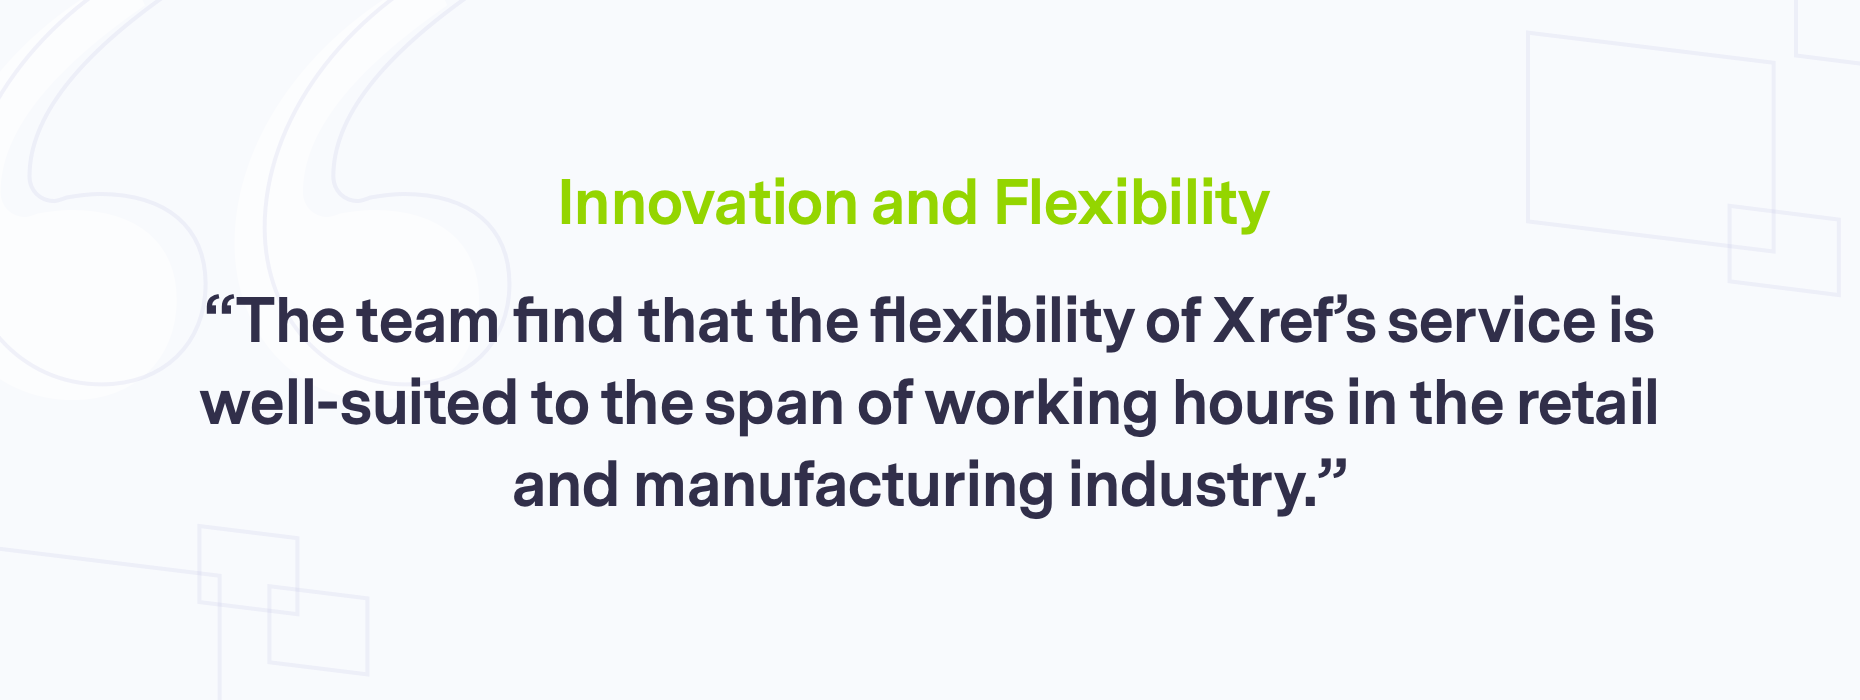 Branded quote on innovation and flexibility